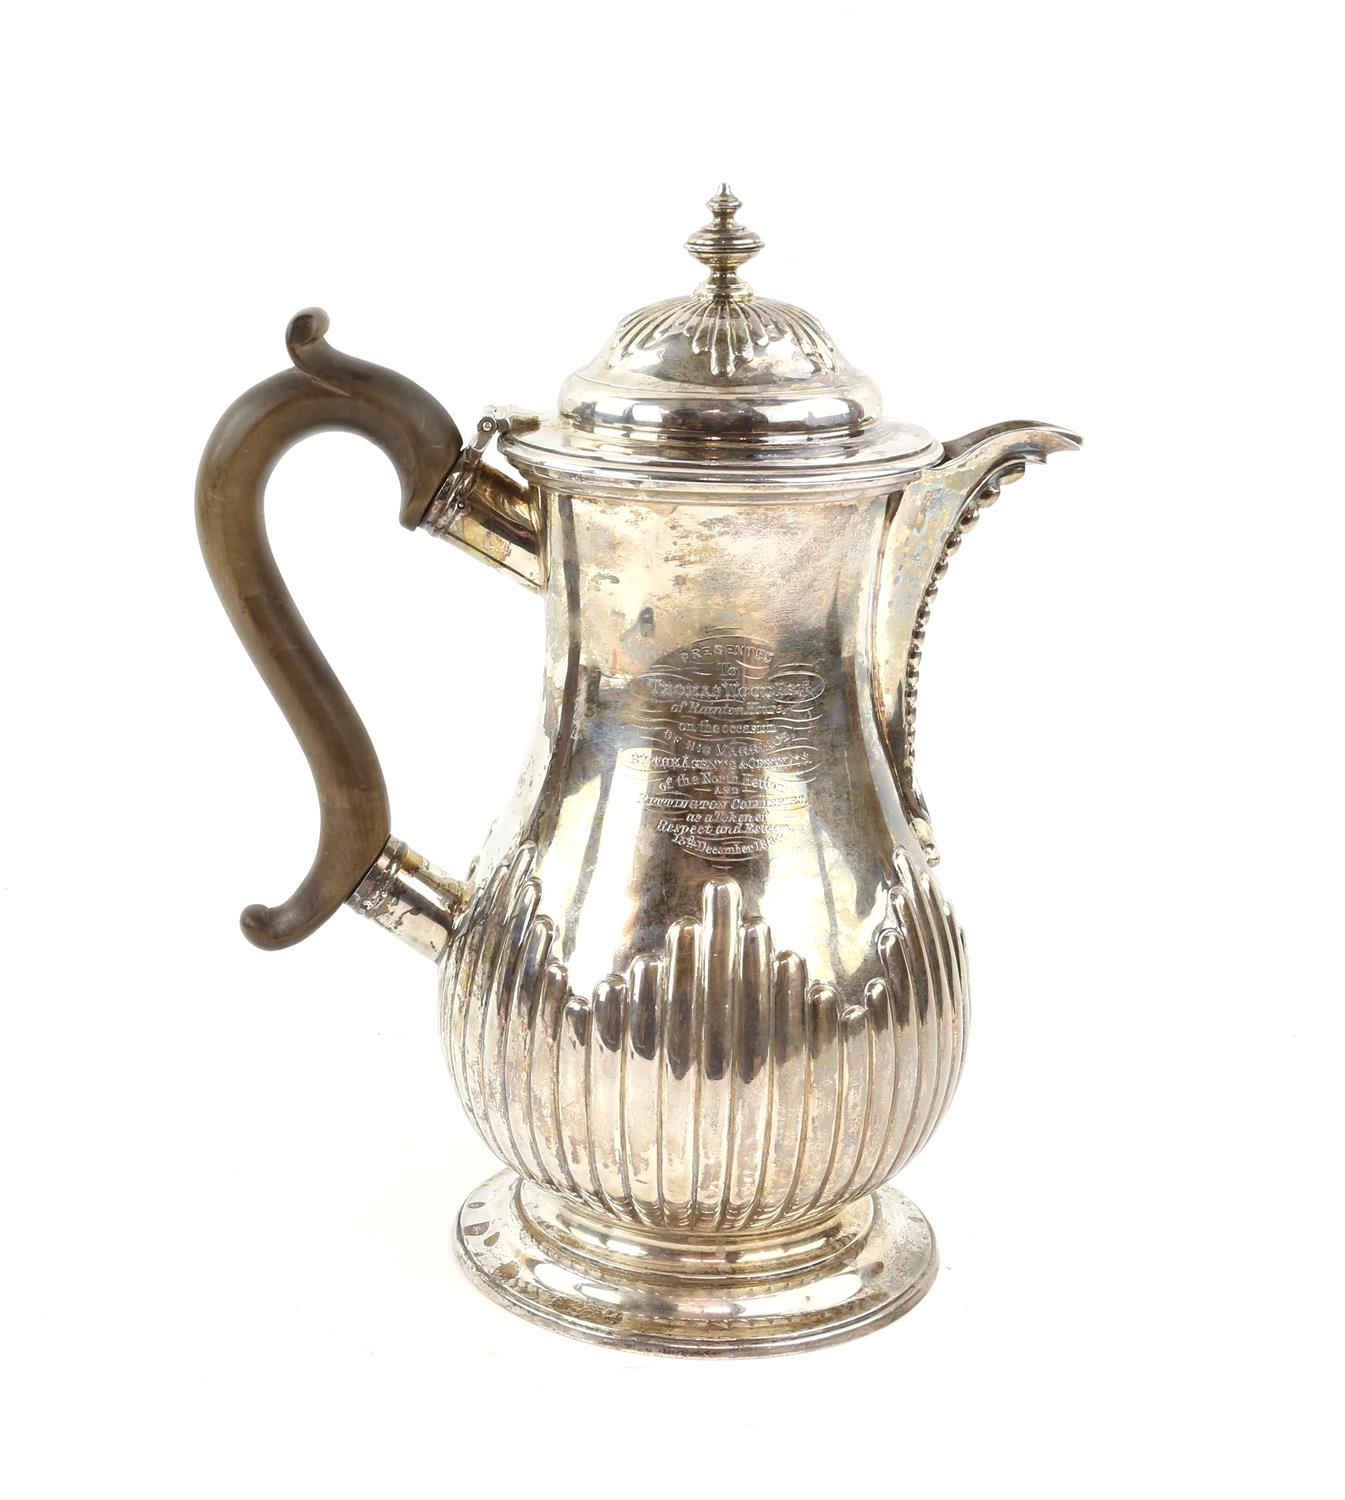 George III silver jug by John Emes, London 1798,half reeded decoration the cover with urn finial,